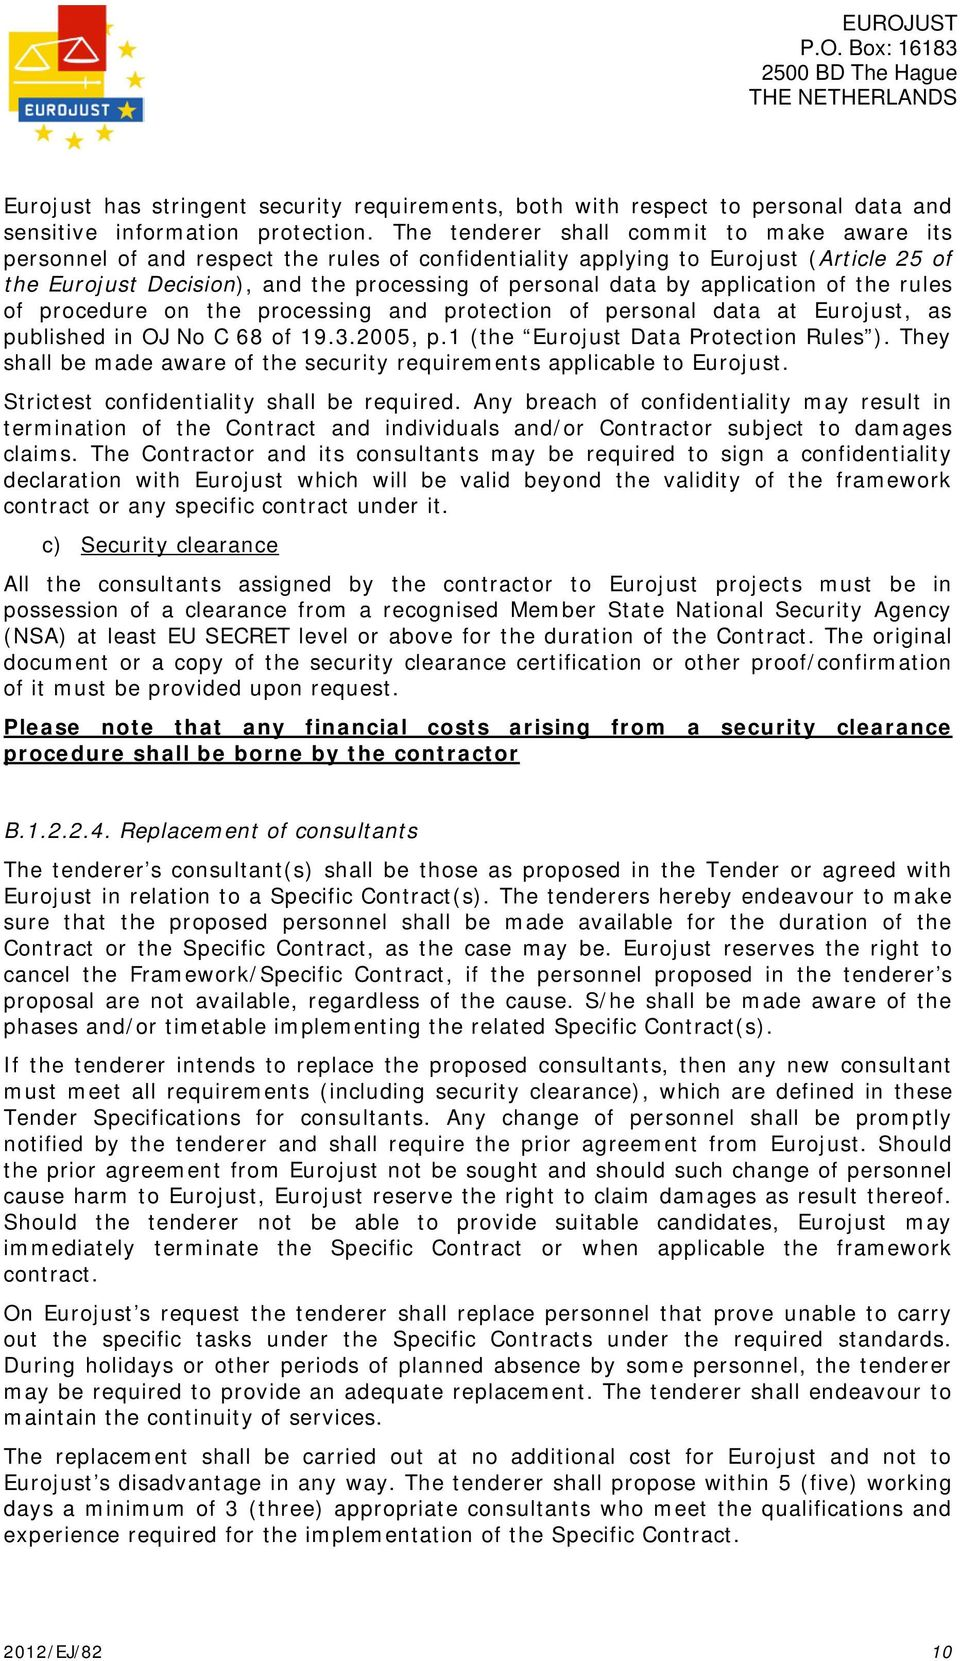 application of the rules of procedure on the processing and protection of personal data at Eurojust, as published in OJ No C 68 of 19.3.2005, p.1 (the Eurojust Data Protection Rules ).